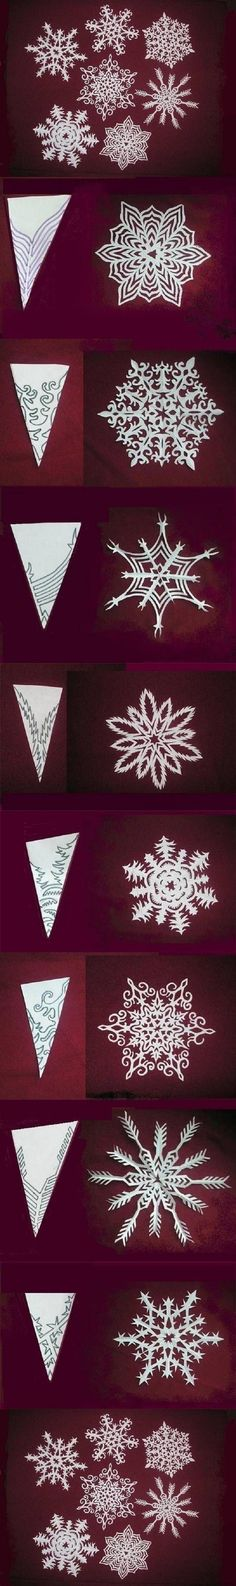 16 Winter-Inspired Paper Crafts to Welcome the Holiday Season